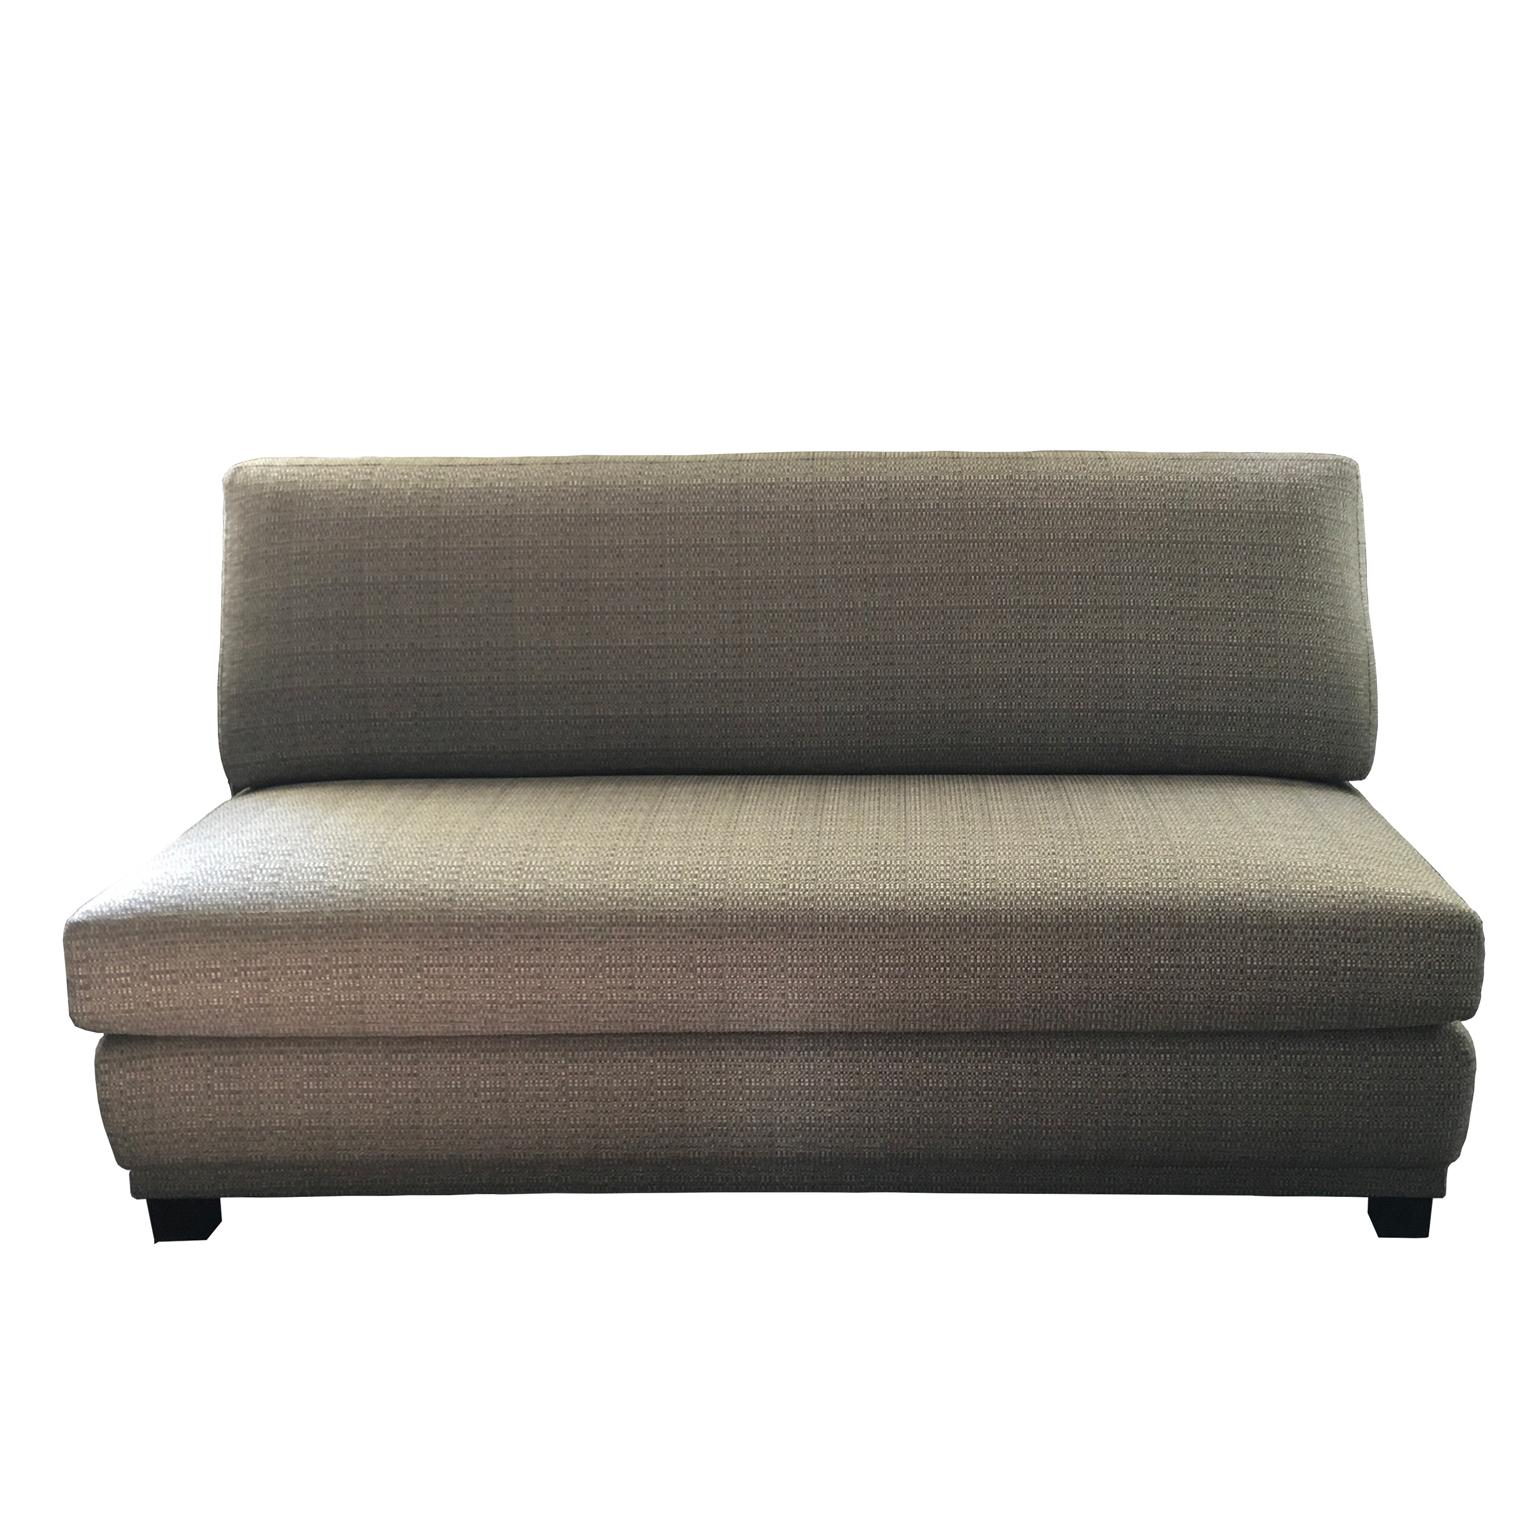 Italy Minimalist Style 3 Seats Upholstered Sofa with Grey Chanel Style Fabric